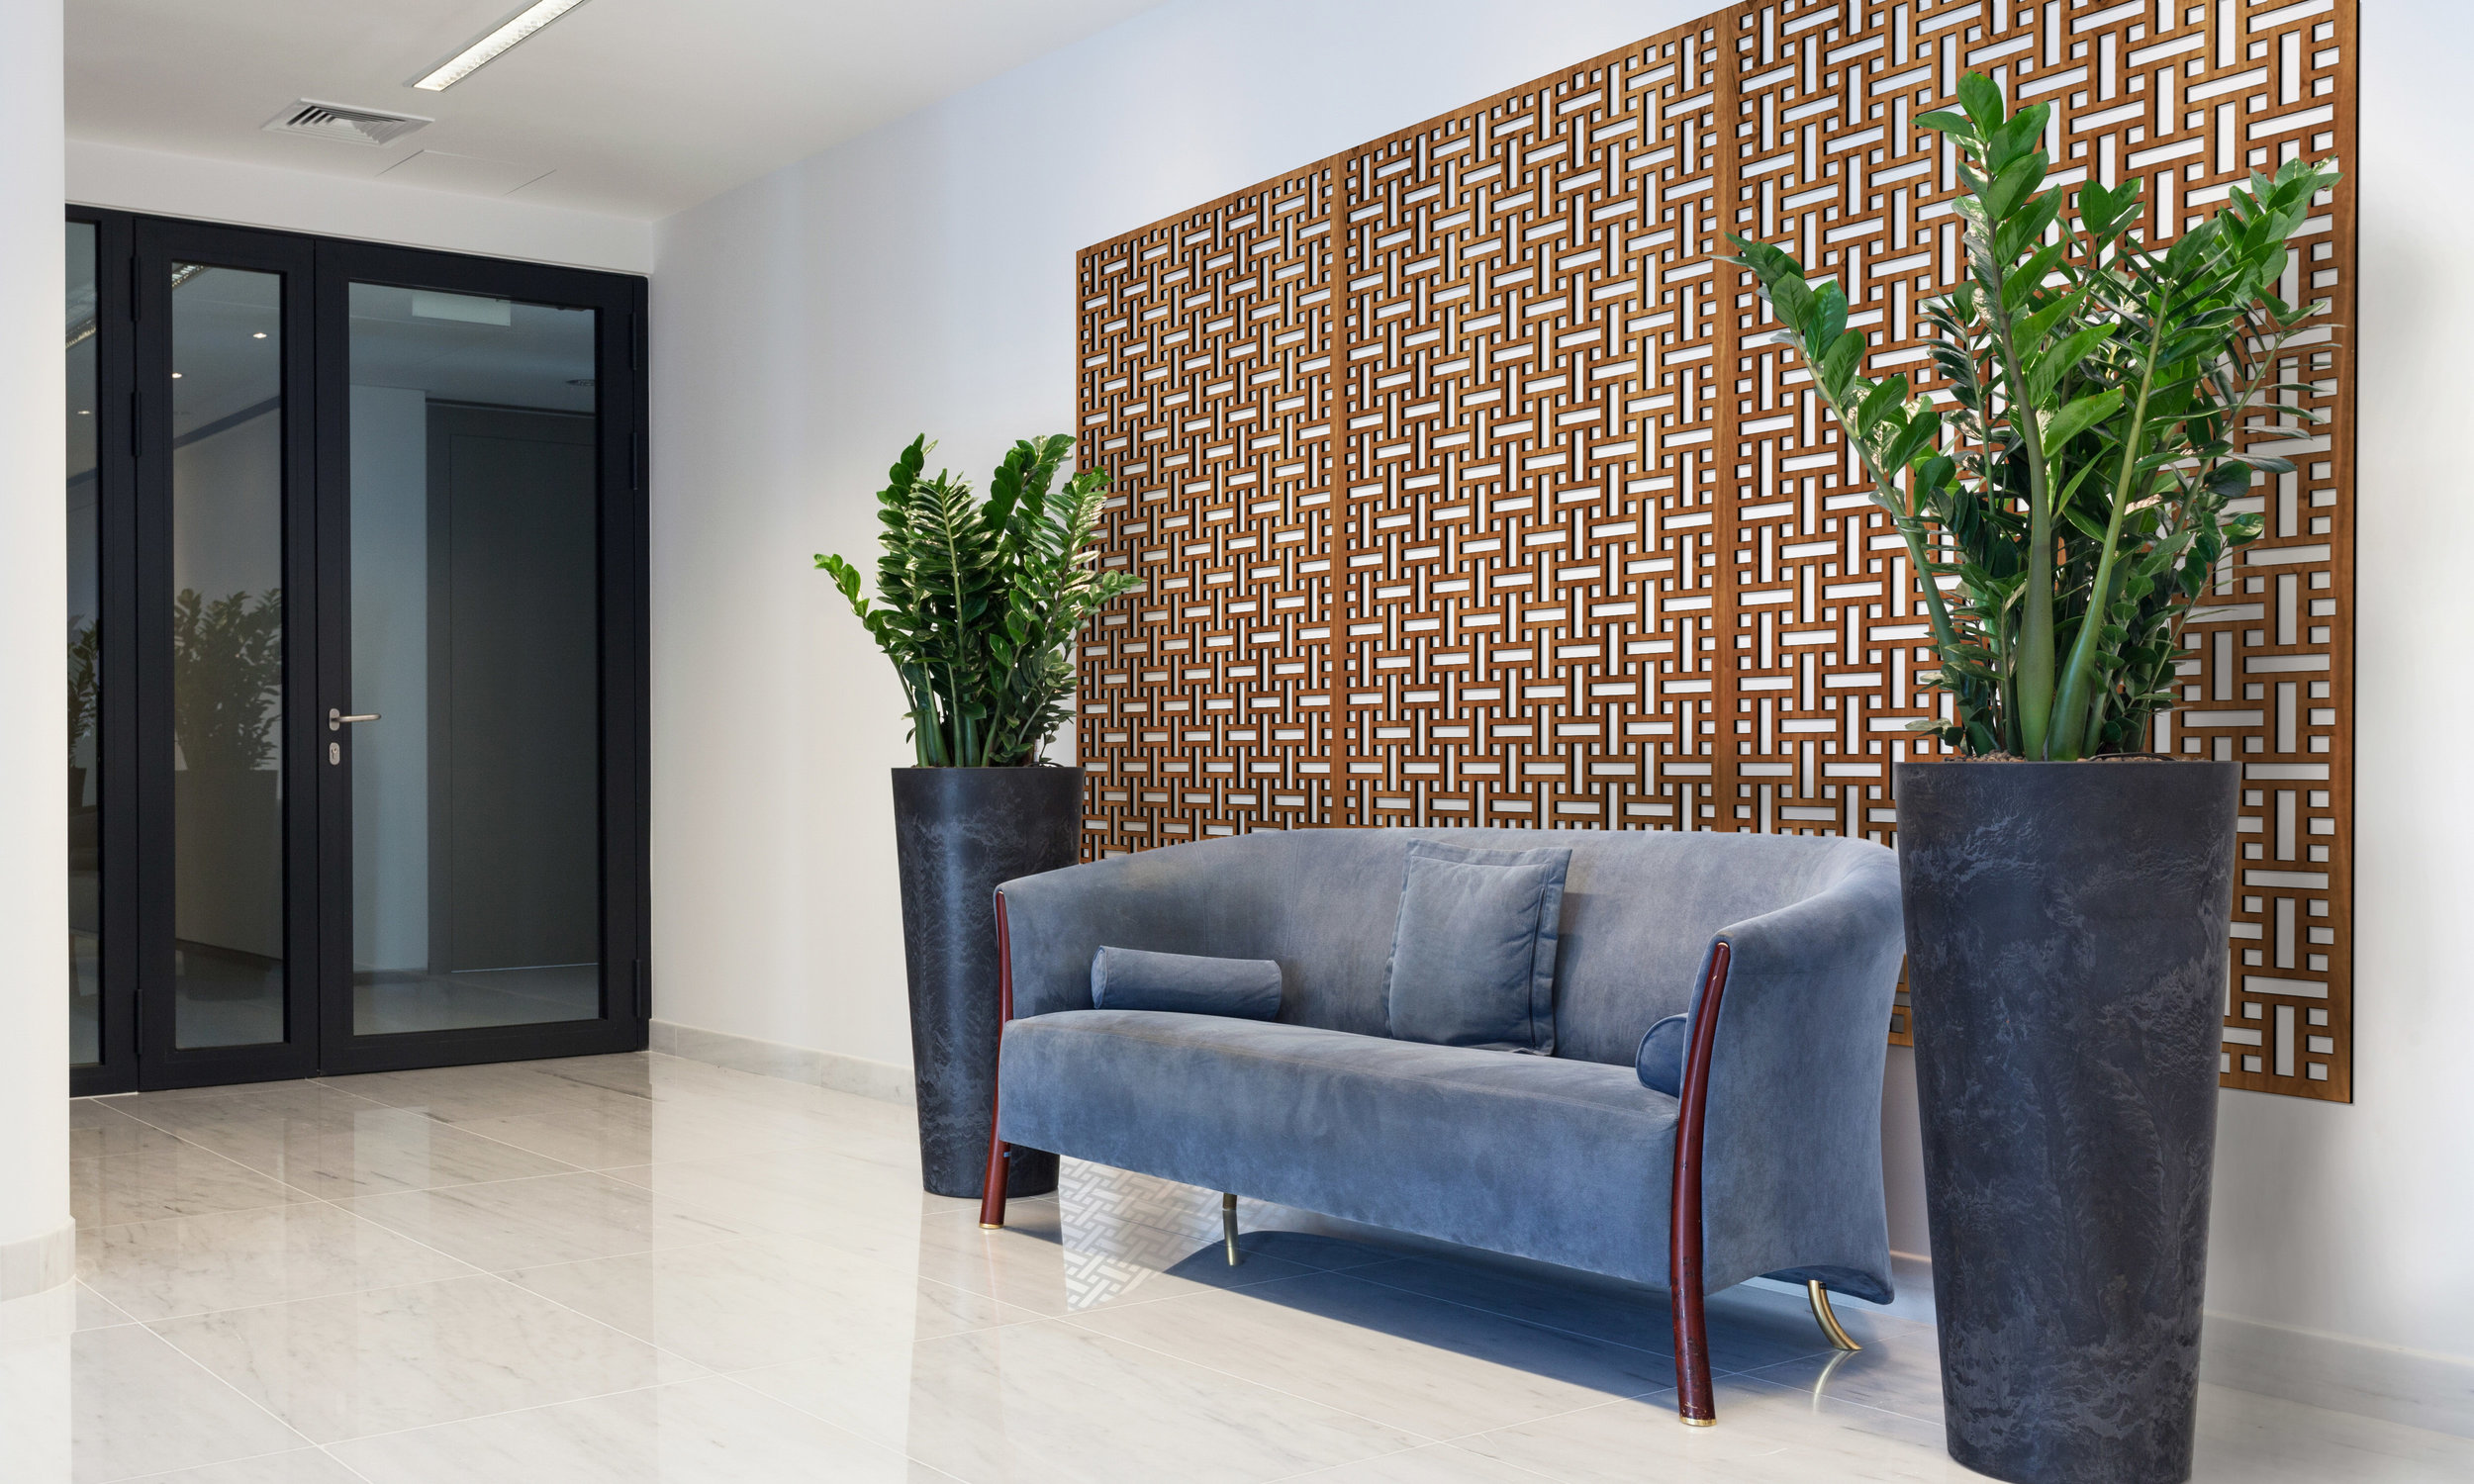 Installation Rendering A   Basketweave decorative office wall panel - shown in Cherry